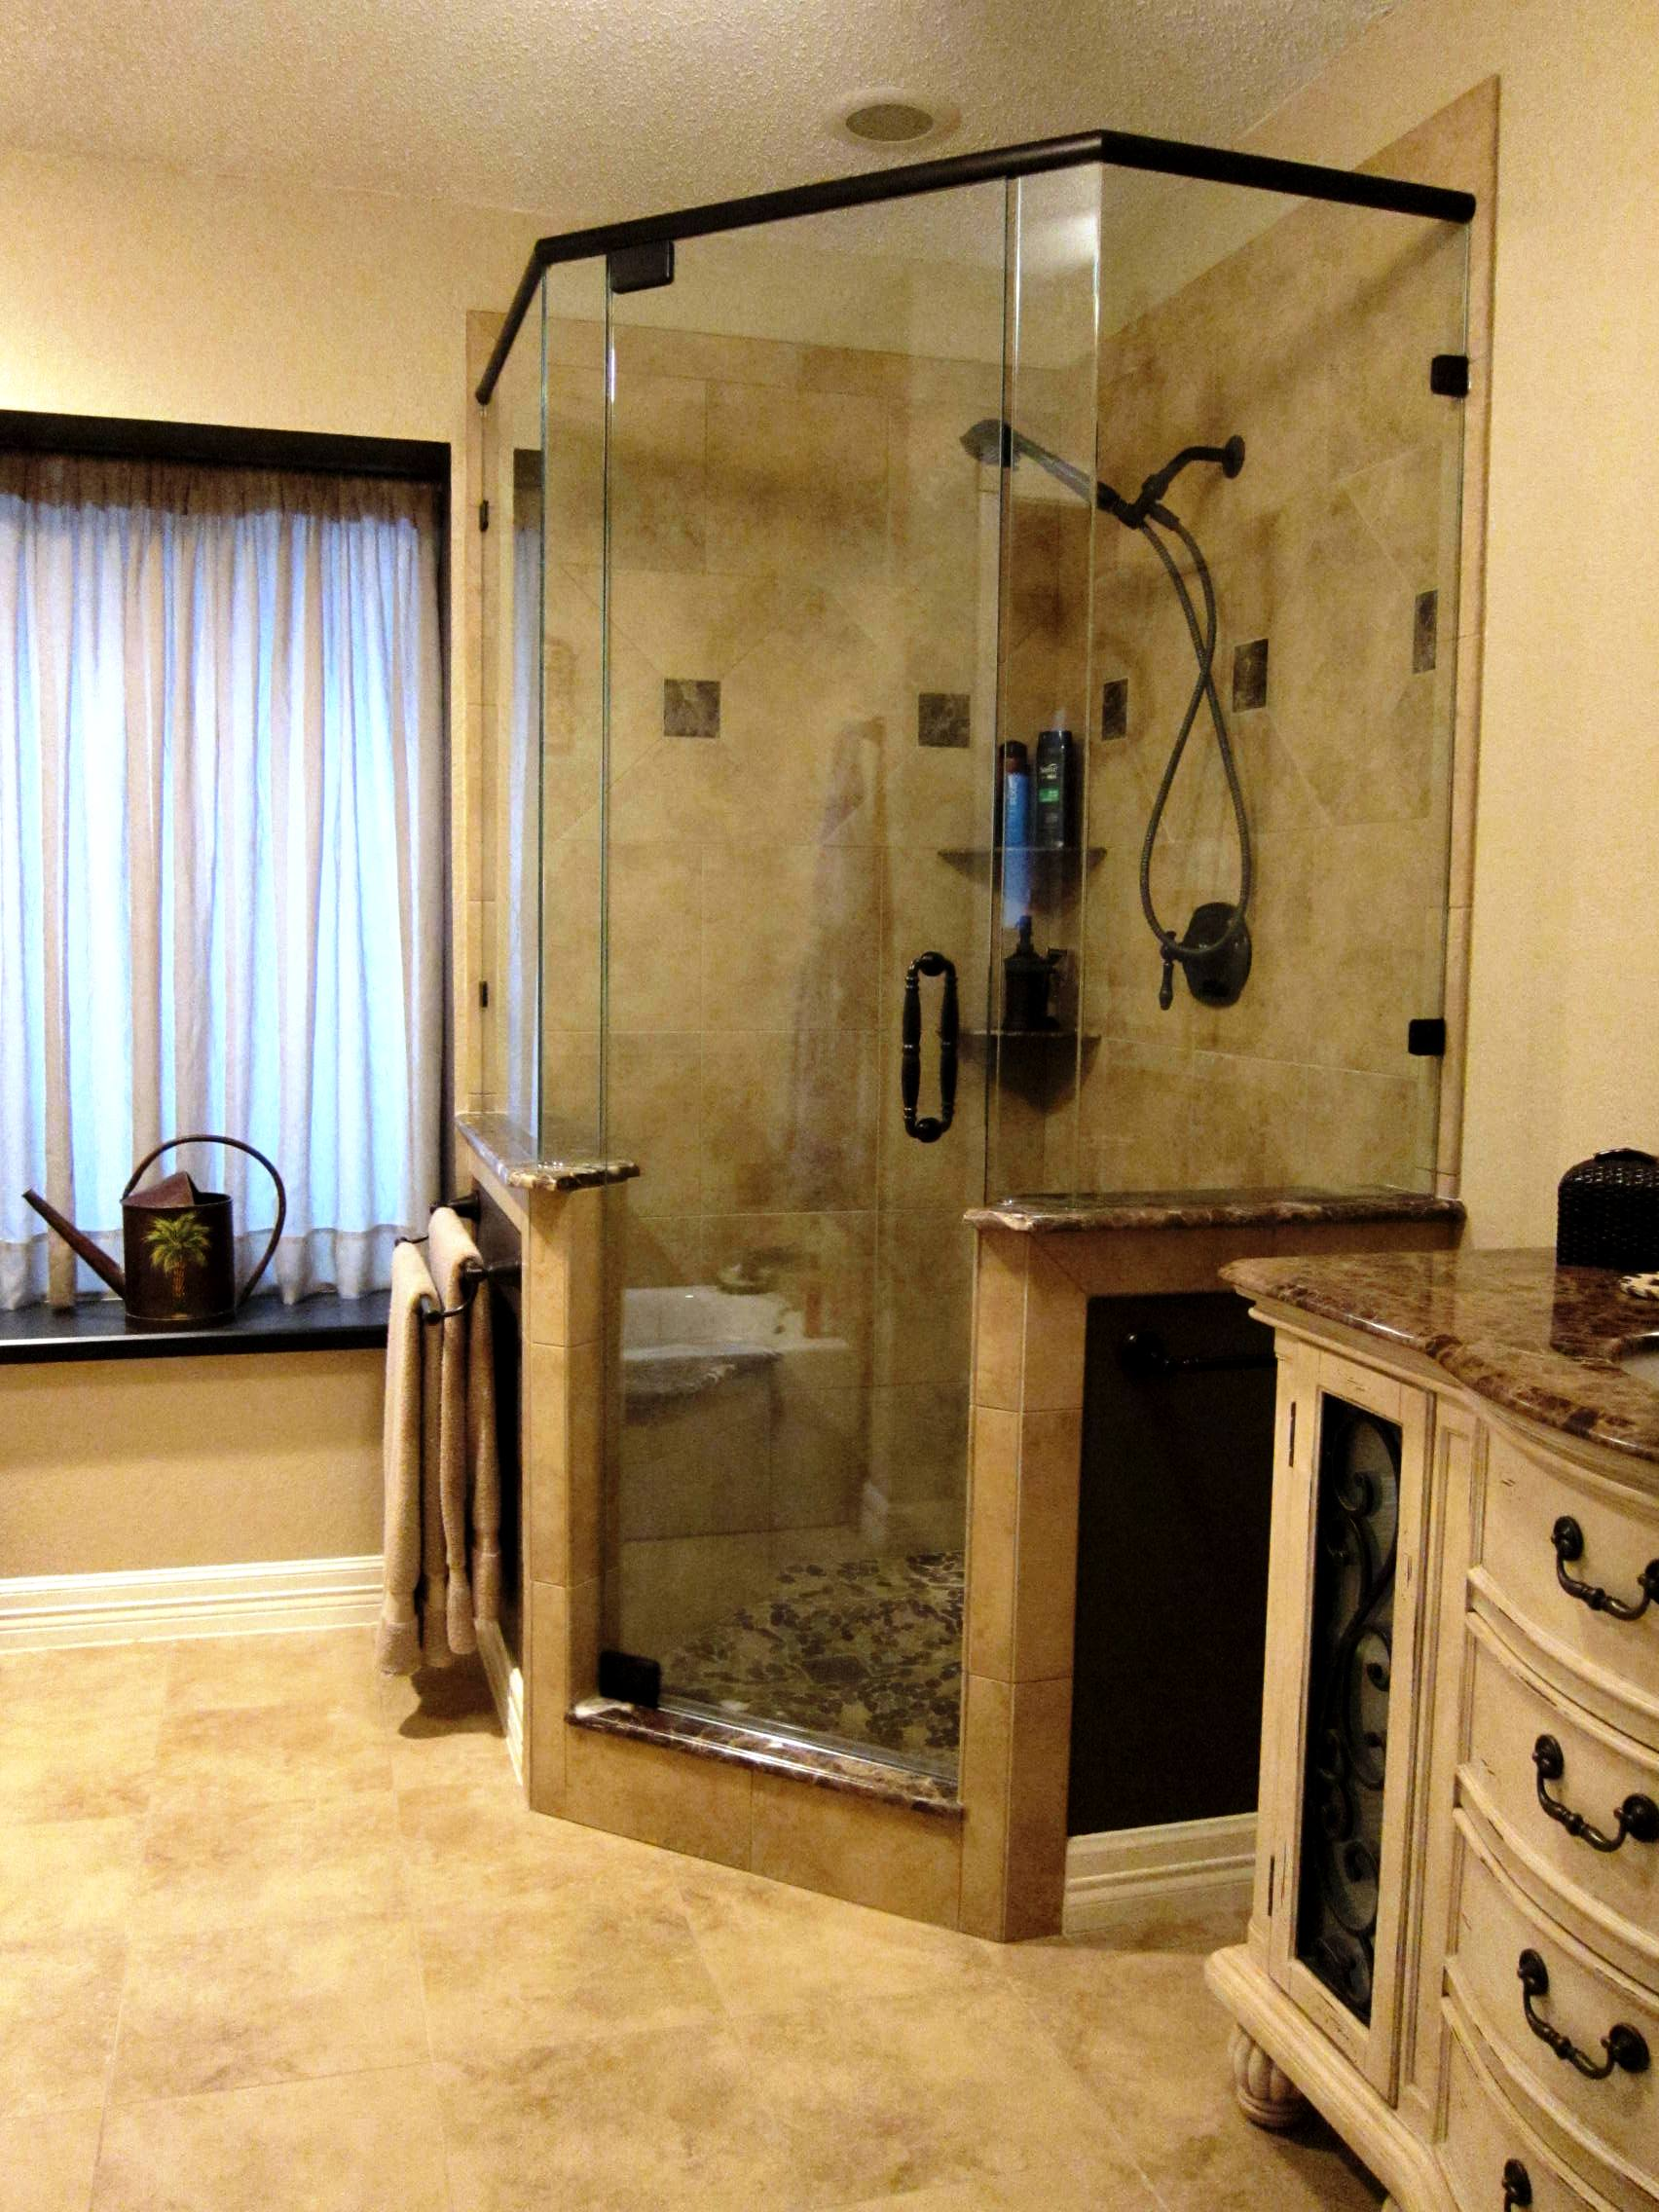 Typical bathroom remodel cost in texas by the floor barn Average price to renovate a bathroom